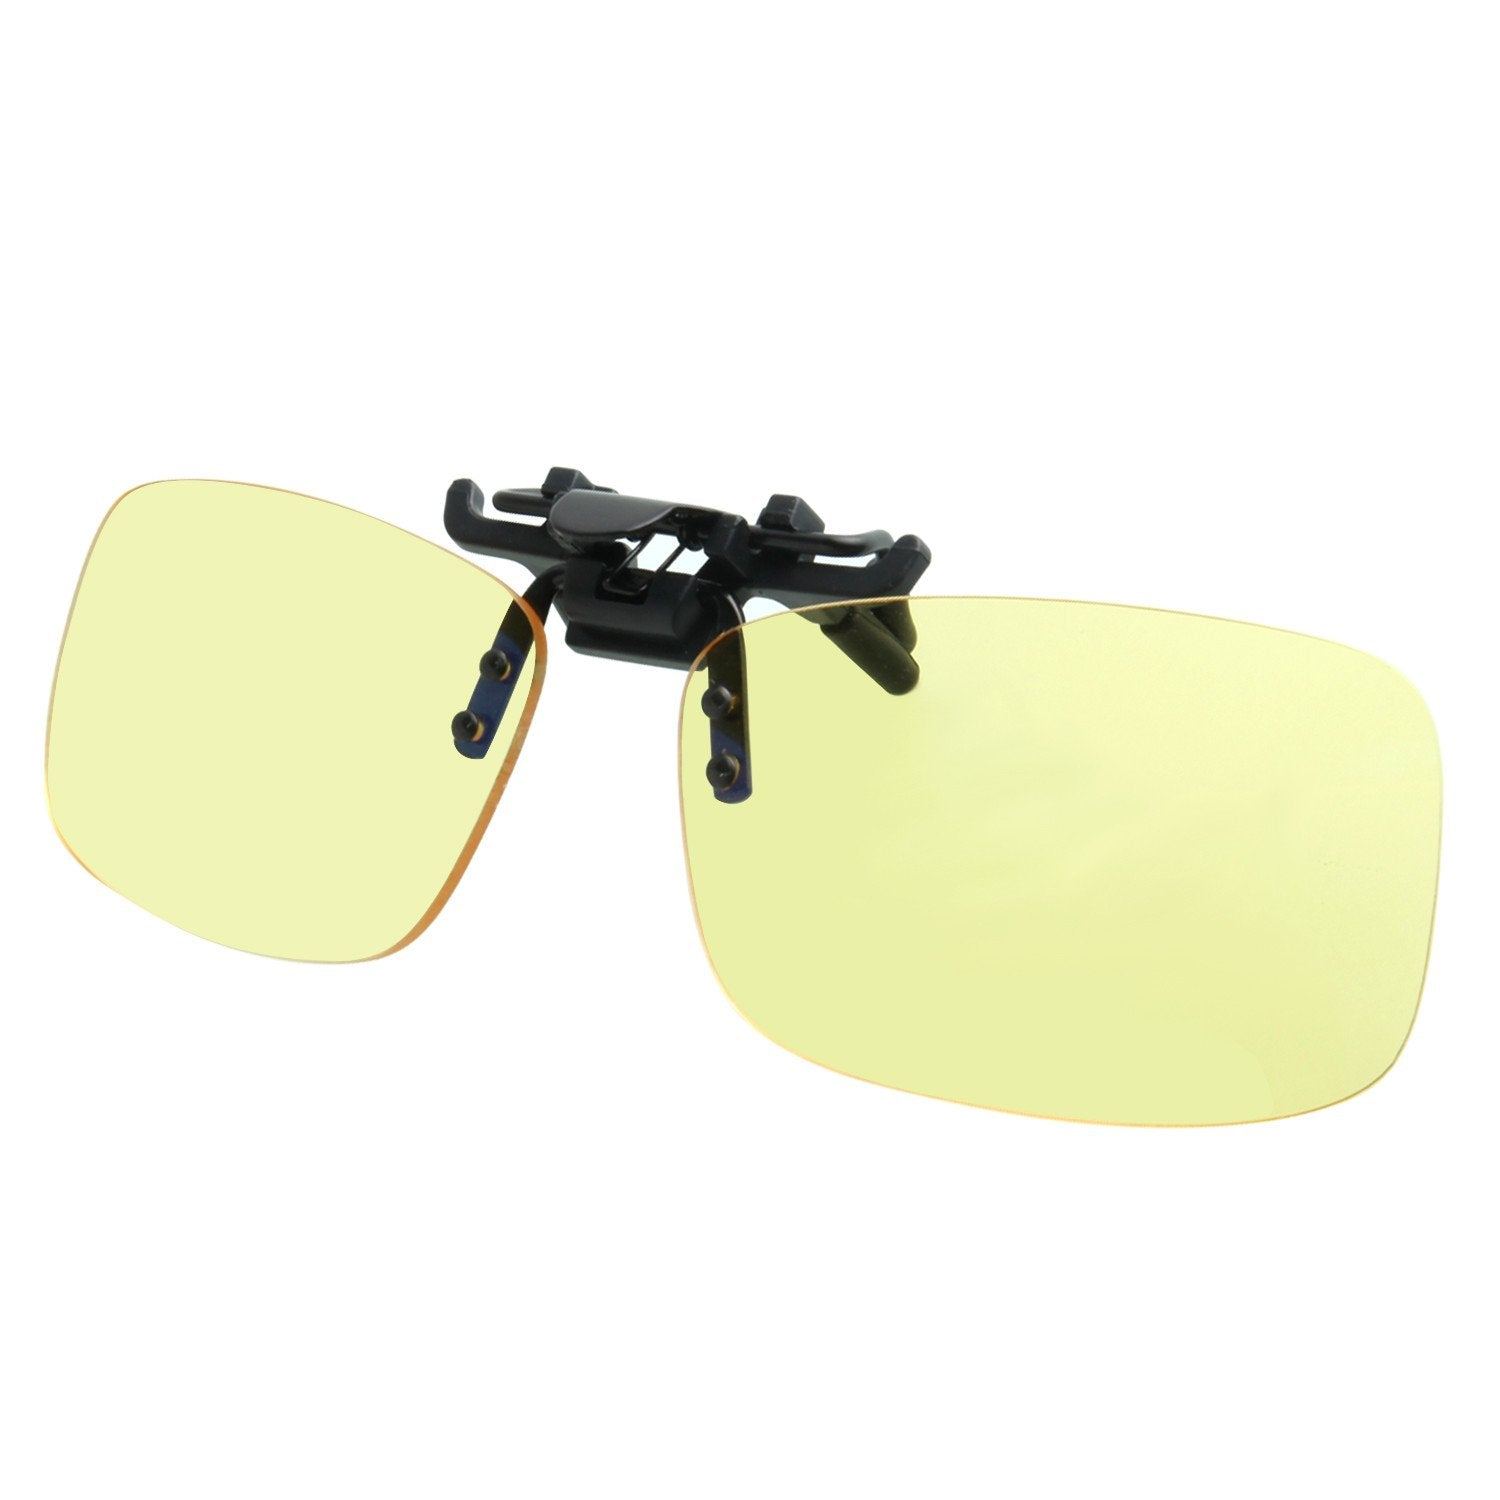 03dfd7fa7285 GAMEKING Classic Clip-on Computer Glasses Easy Fit on Rx – CrystalHill